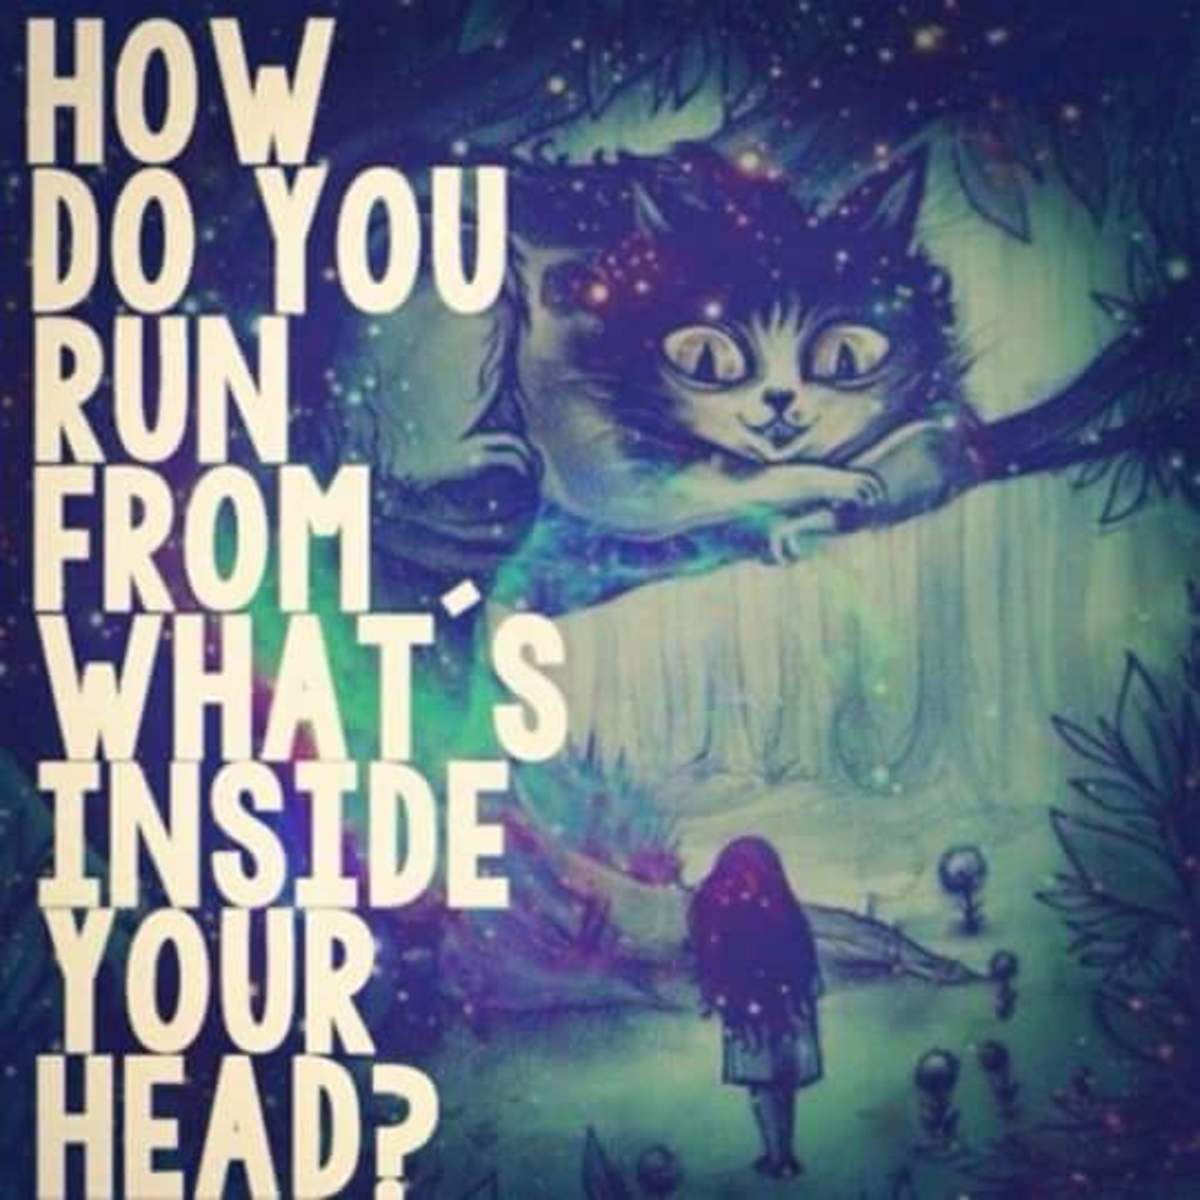 Just like the Cheshire Cat said in the book Alice in Wonderland by Lewis Caroll, it is hard for the Relationship Addict to run from the addiction that is ingrained inside their mind.